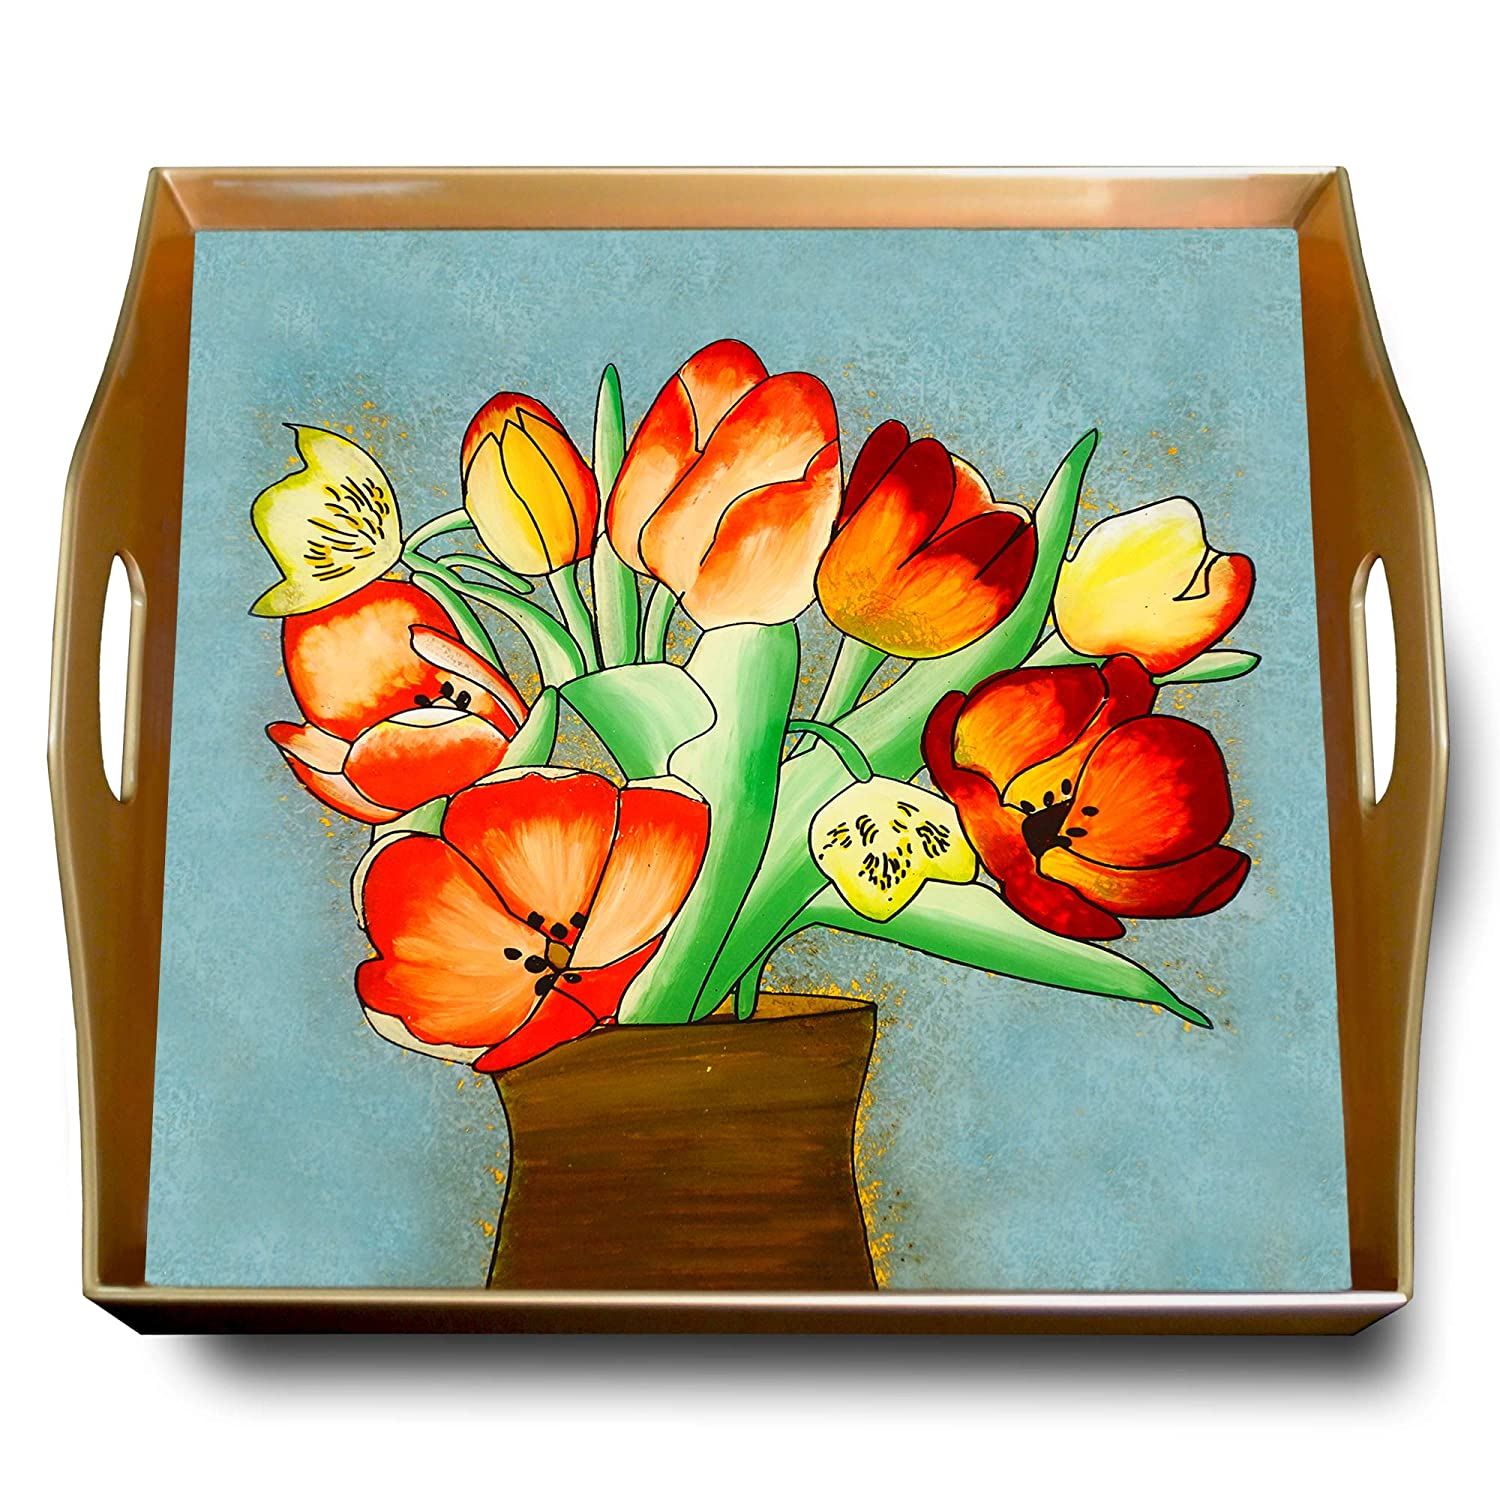 Charcuterie tray - Washington Mall Colorful Tulip Hand Bouquet Square Painted Las Vegas Mall